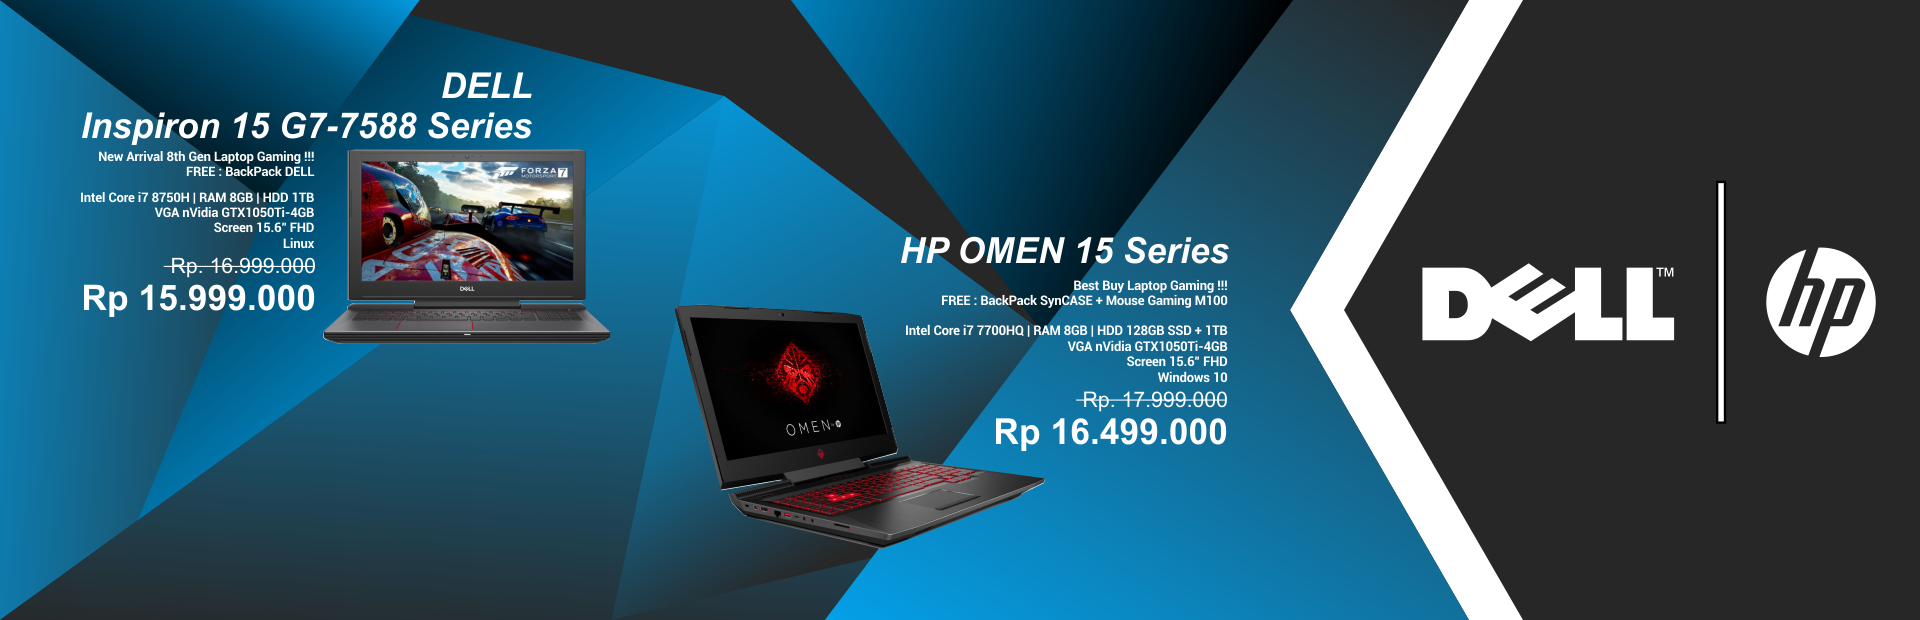 DELL Inspiron 15 G7-7588 Series / HP OMEN 15 Series